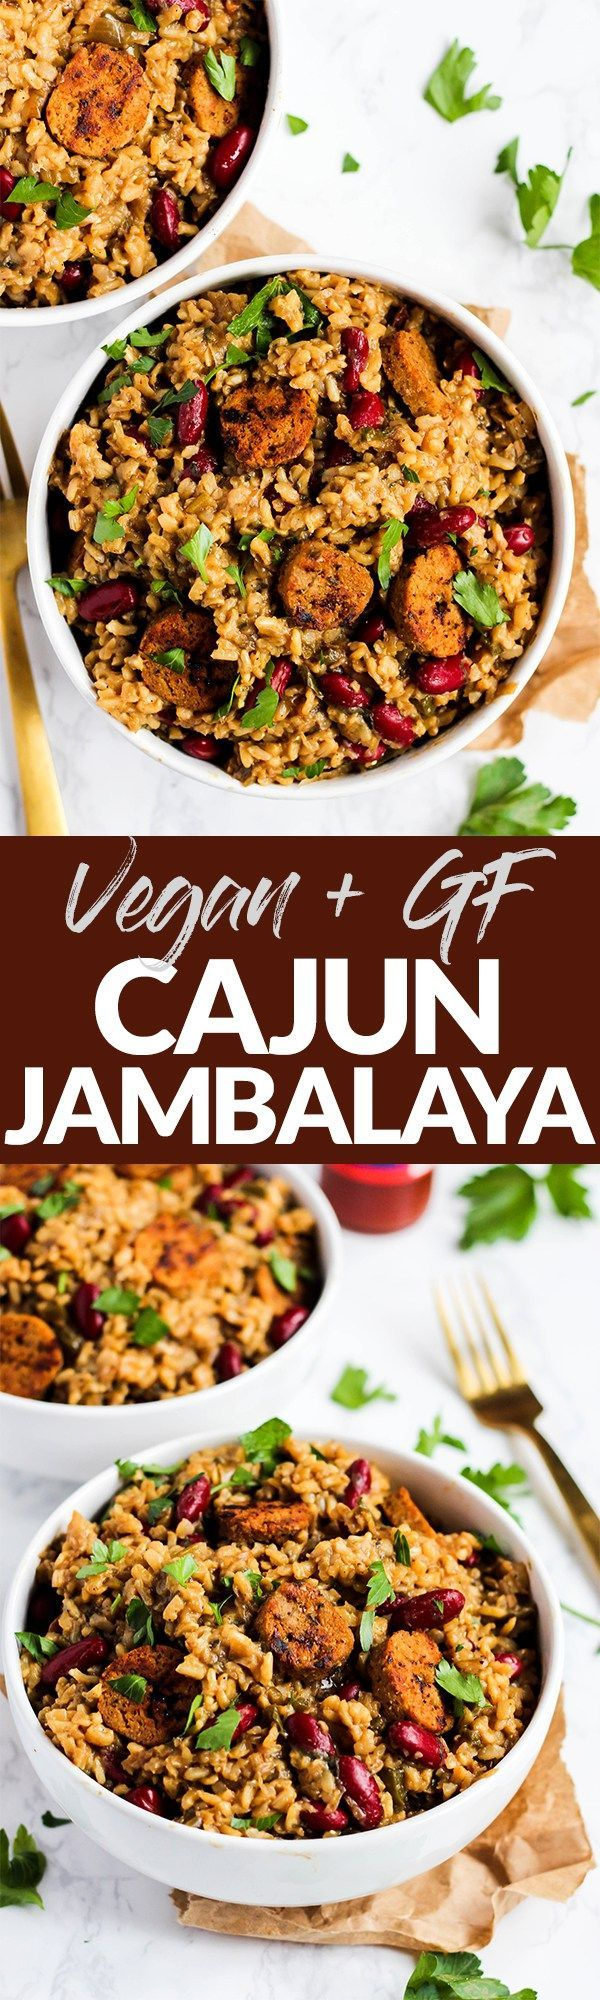 Serve this Classic Cajun Vegan Jambalaya to a crowd as a comforting, one-pot meal that will impress everyone! Authentic, simple & so full of Creole flavor. (gluten-free) @pompeian #TrendingintheKitchen #ad